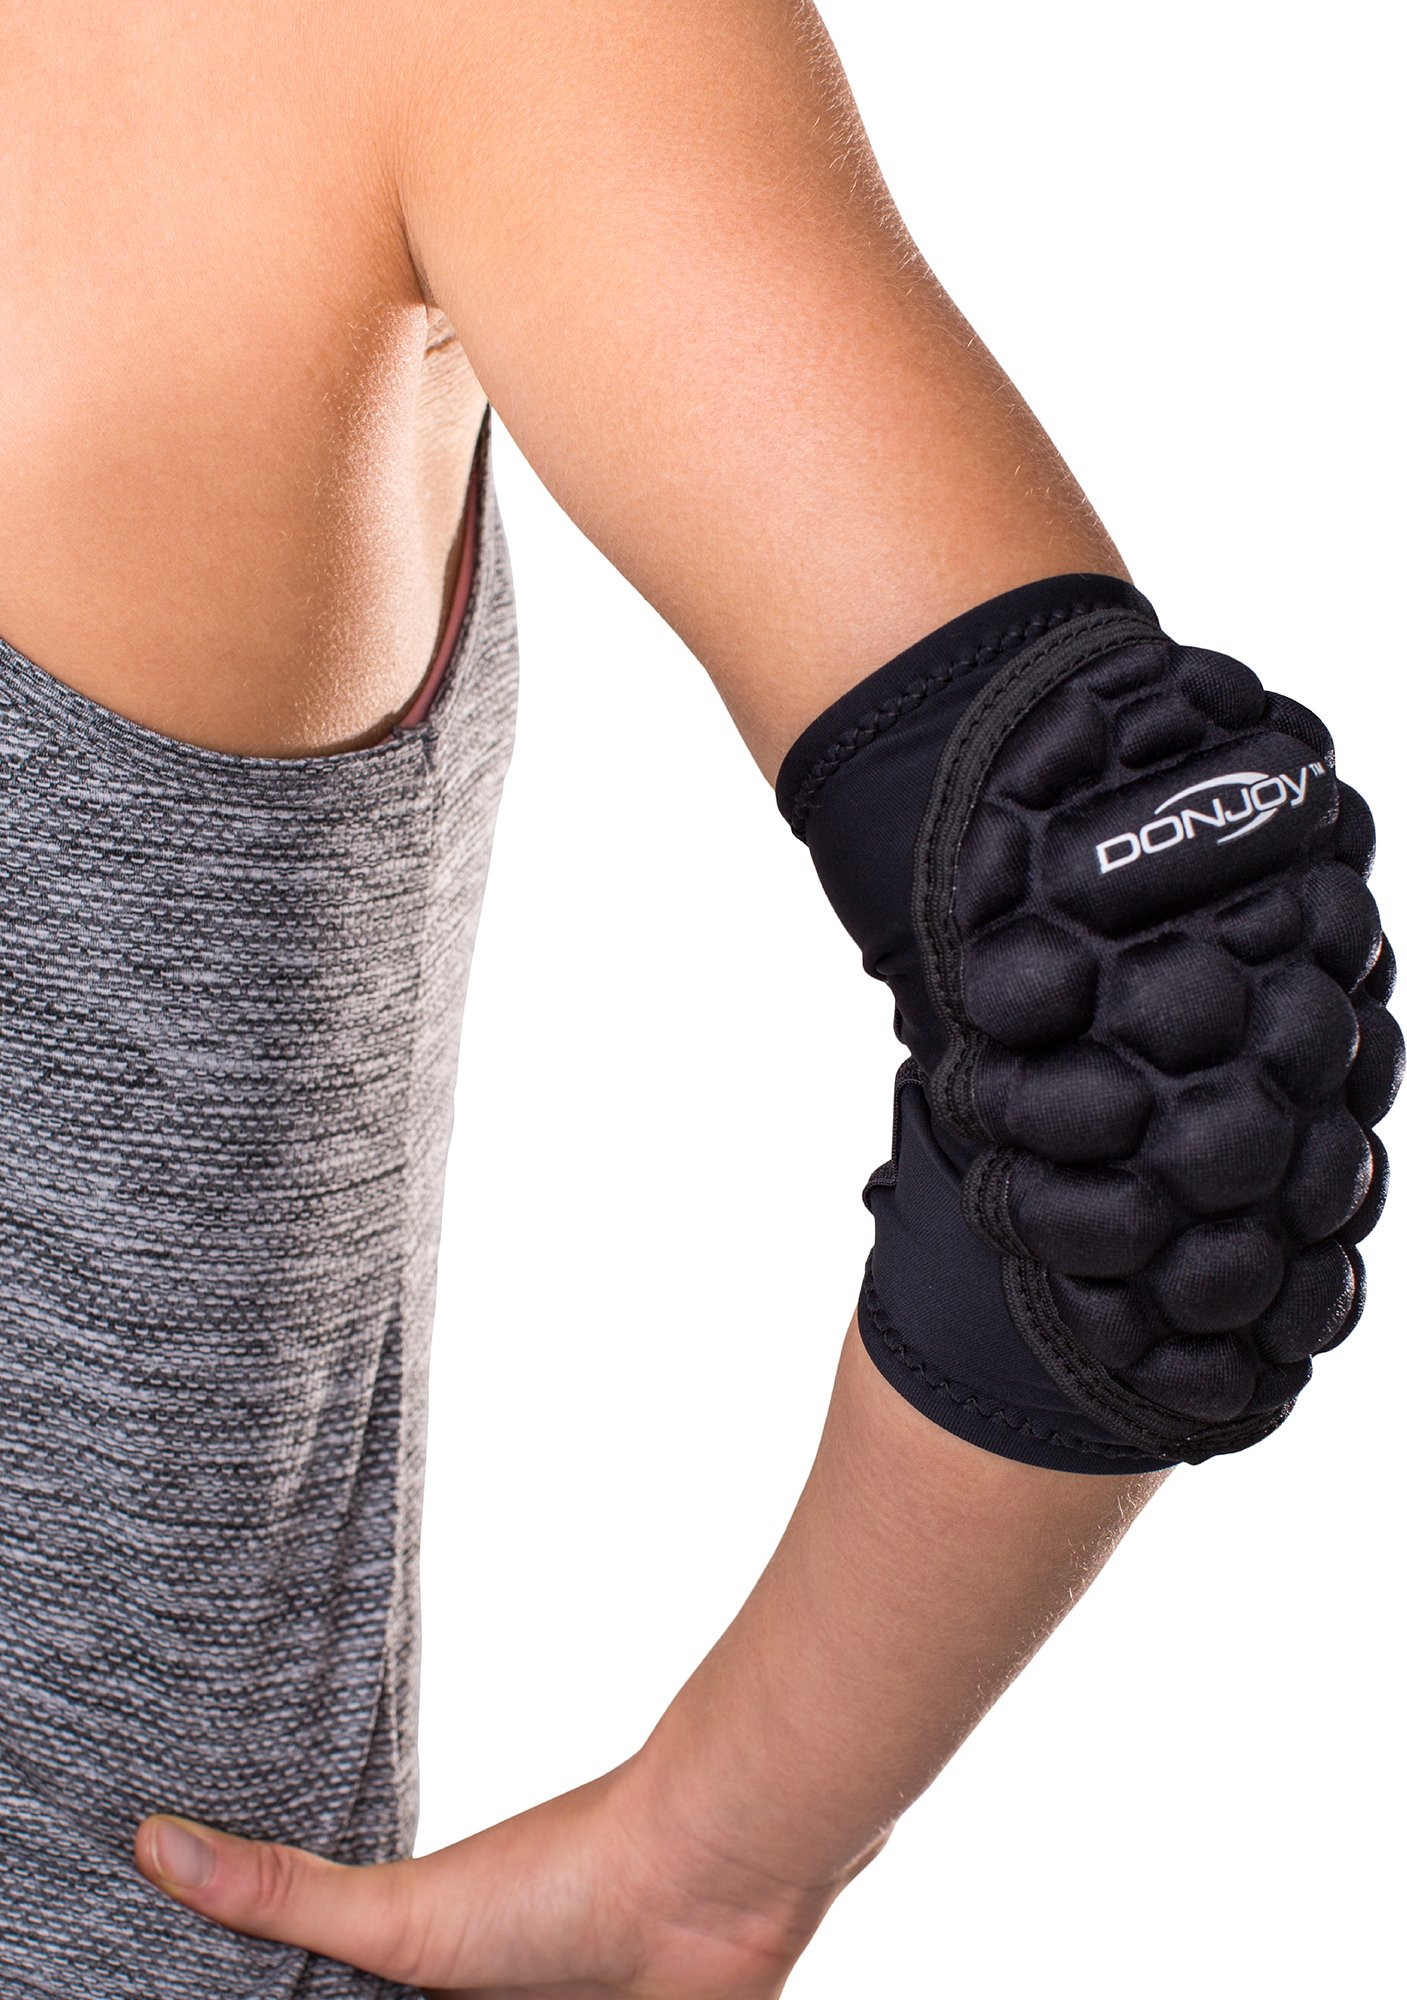 DonJoy Spider Elbow Pad Sleeve, X-Small by DonJoy